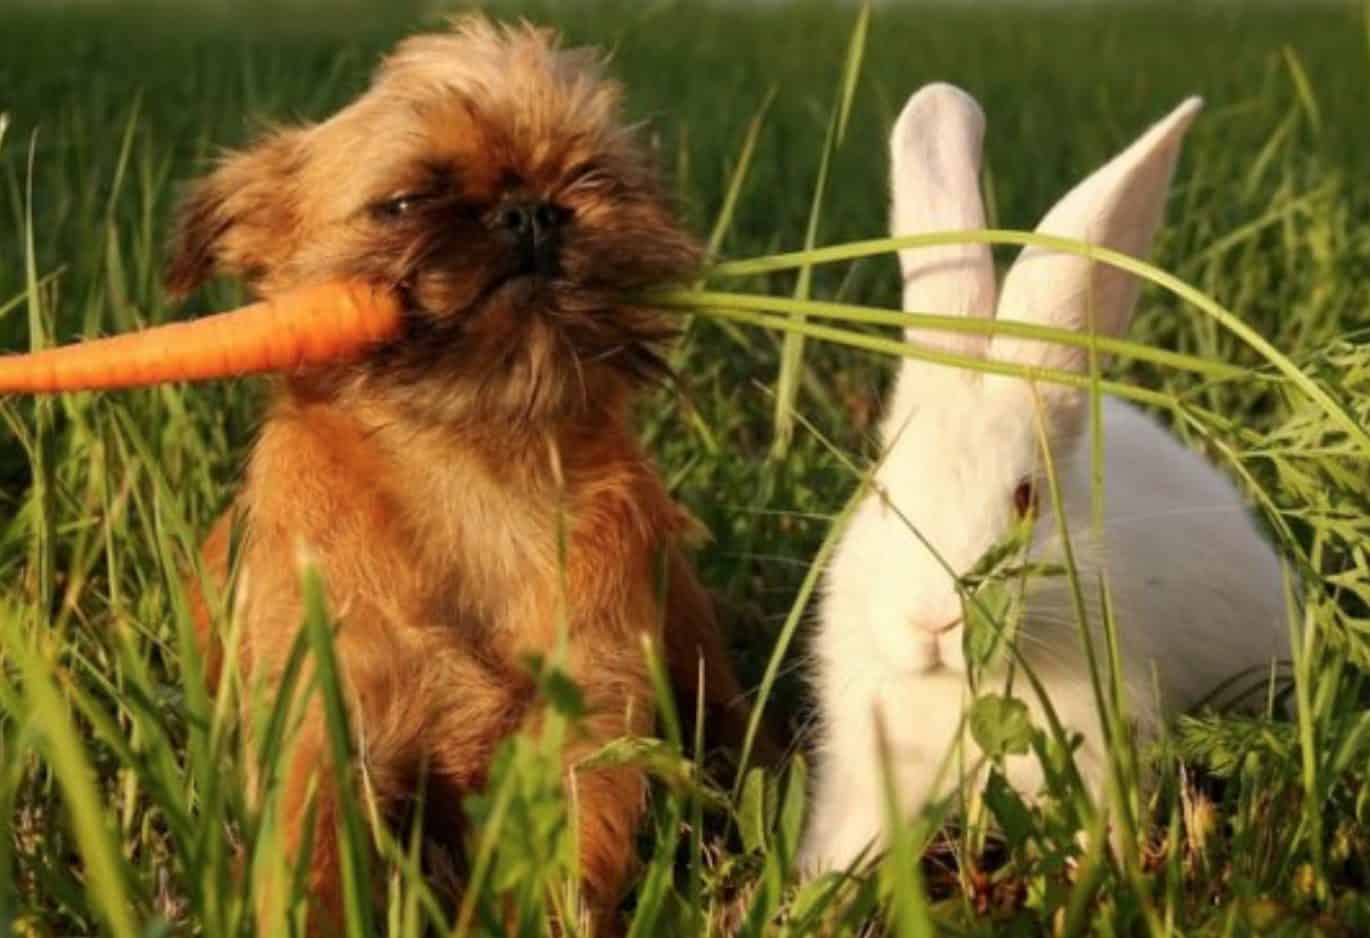 Dogs can only eat carrots when they are properly washed and shredded.